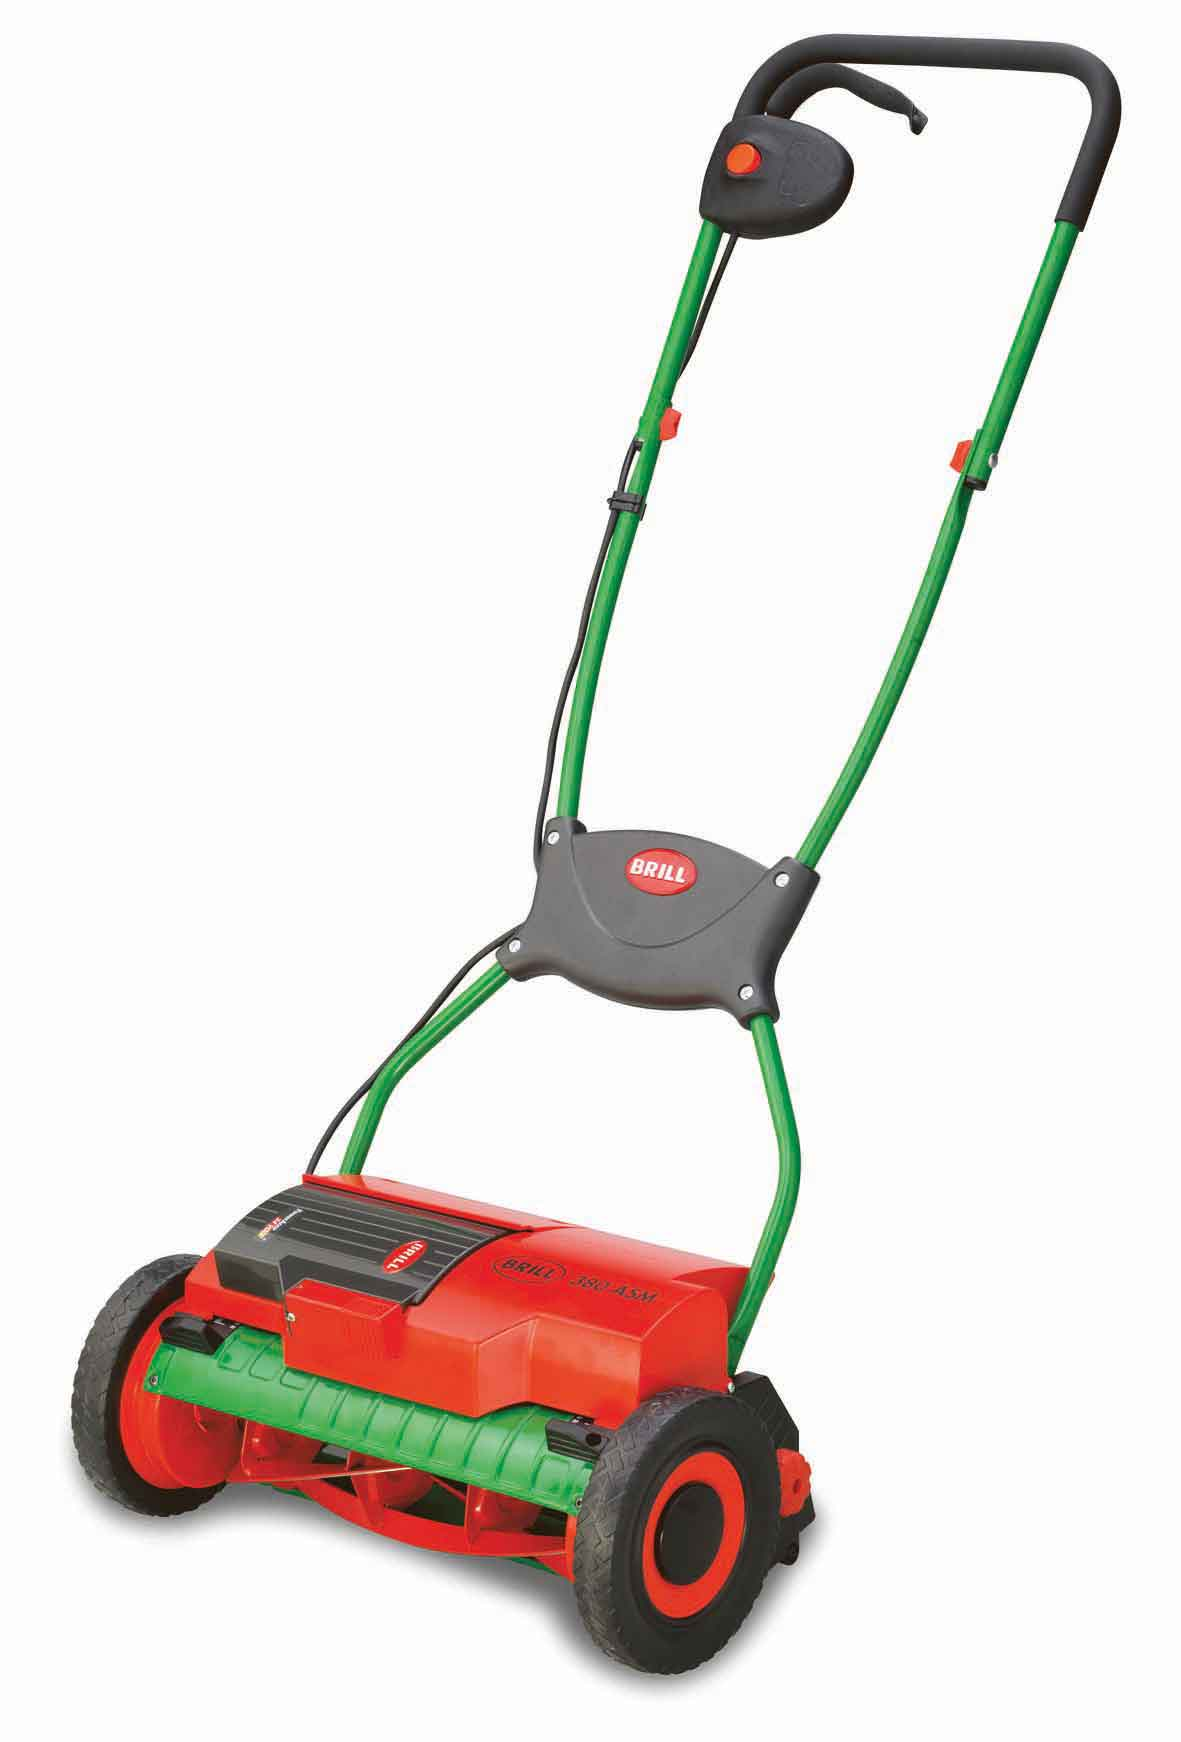 379 Amp Ships Free Brill Accu Cordless Electric Lawn Mower